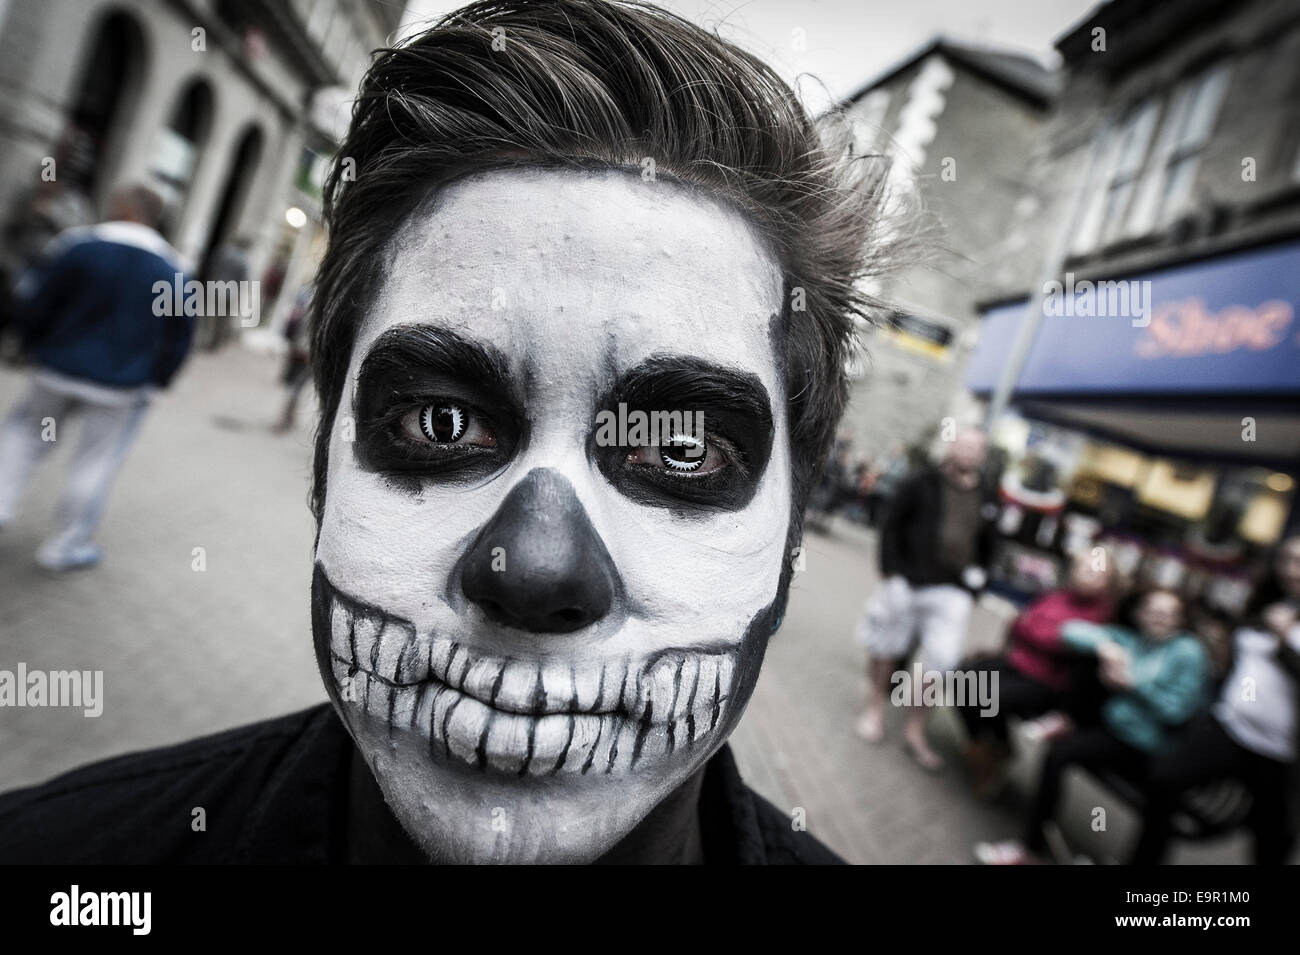 Newquay, Cornwall. 31st October 204.  A Cornish zombie stands in Newquay High Street. Credit:  Gordon Scammell/Alamy - Stock Image